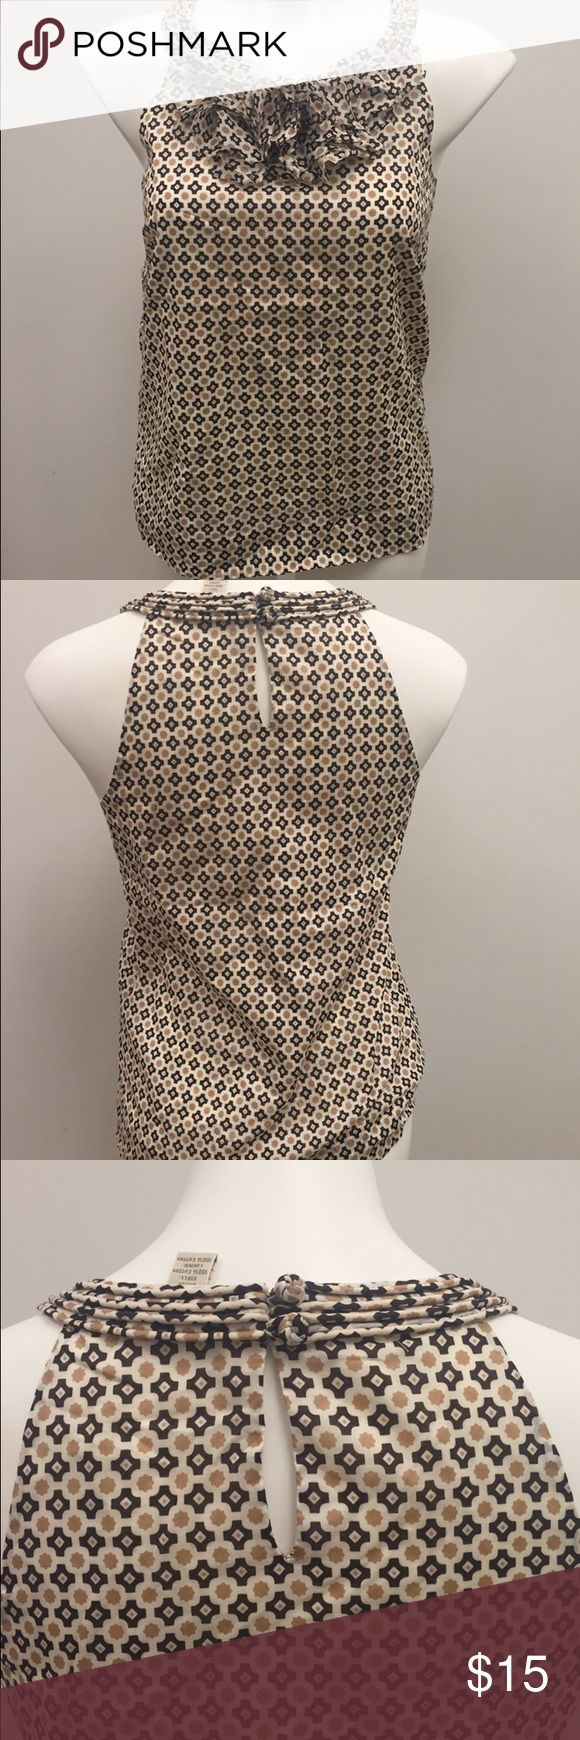 J. Crew Casa Mosaic Cotton Petal Cami $78 Beautiful brown and neutral 100% cotton blouse from J. Crew with a mosaic print and petal detailing at the neckline. It has a slight opening in the back with closure at neckline. Size 4, very good condition! #jcrew #neutral #cotton #jcrewforsale #mosaic J. Crew Tops Blouses